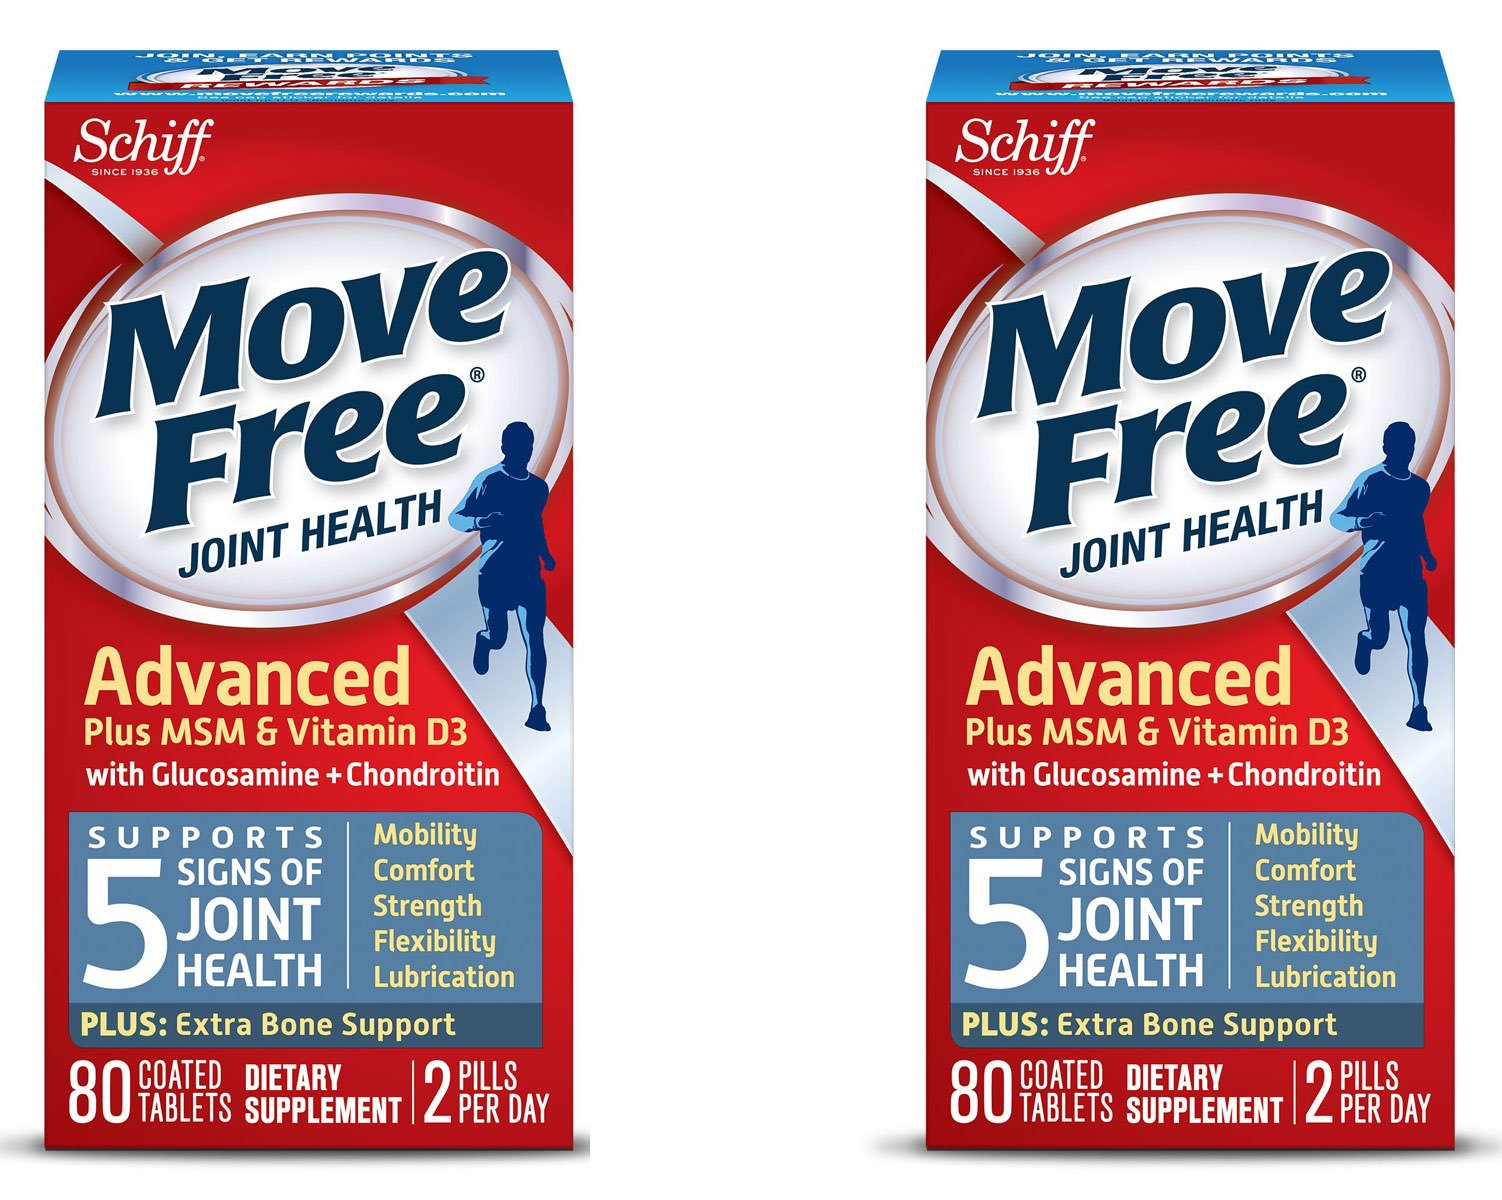 Move Free Advanced Plus MSM and Vitamin D3, 80 tablets - Joint Health Supplement with Glucosamine and Chondroitin , 80 Count, 2 Pack by Move Free